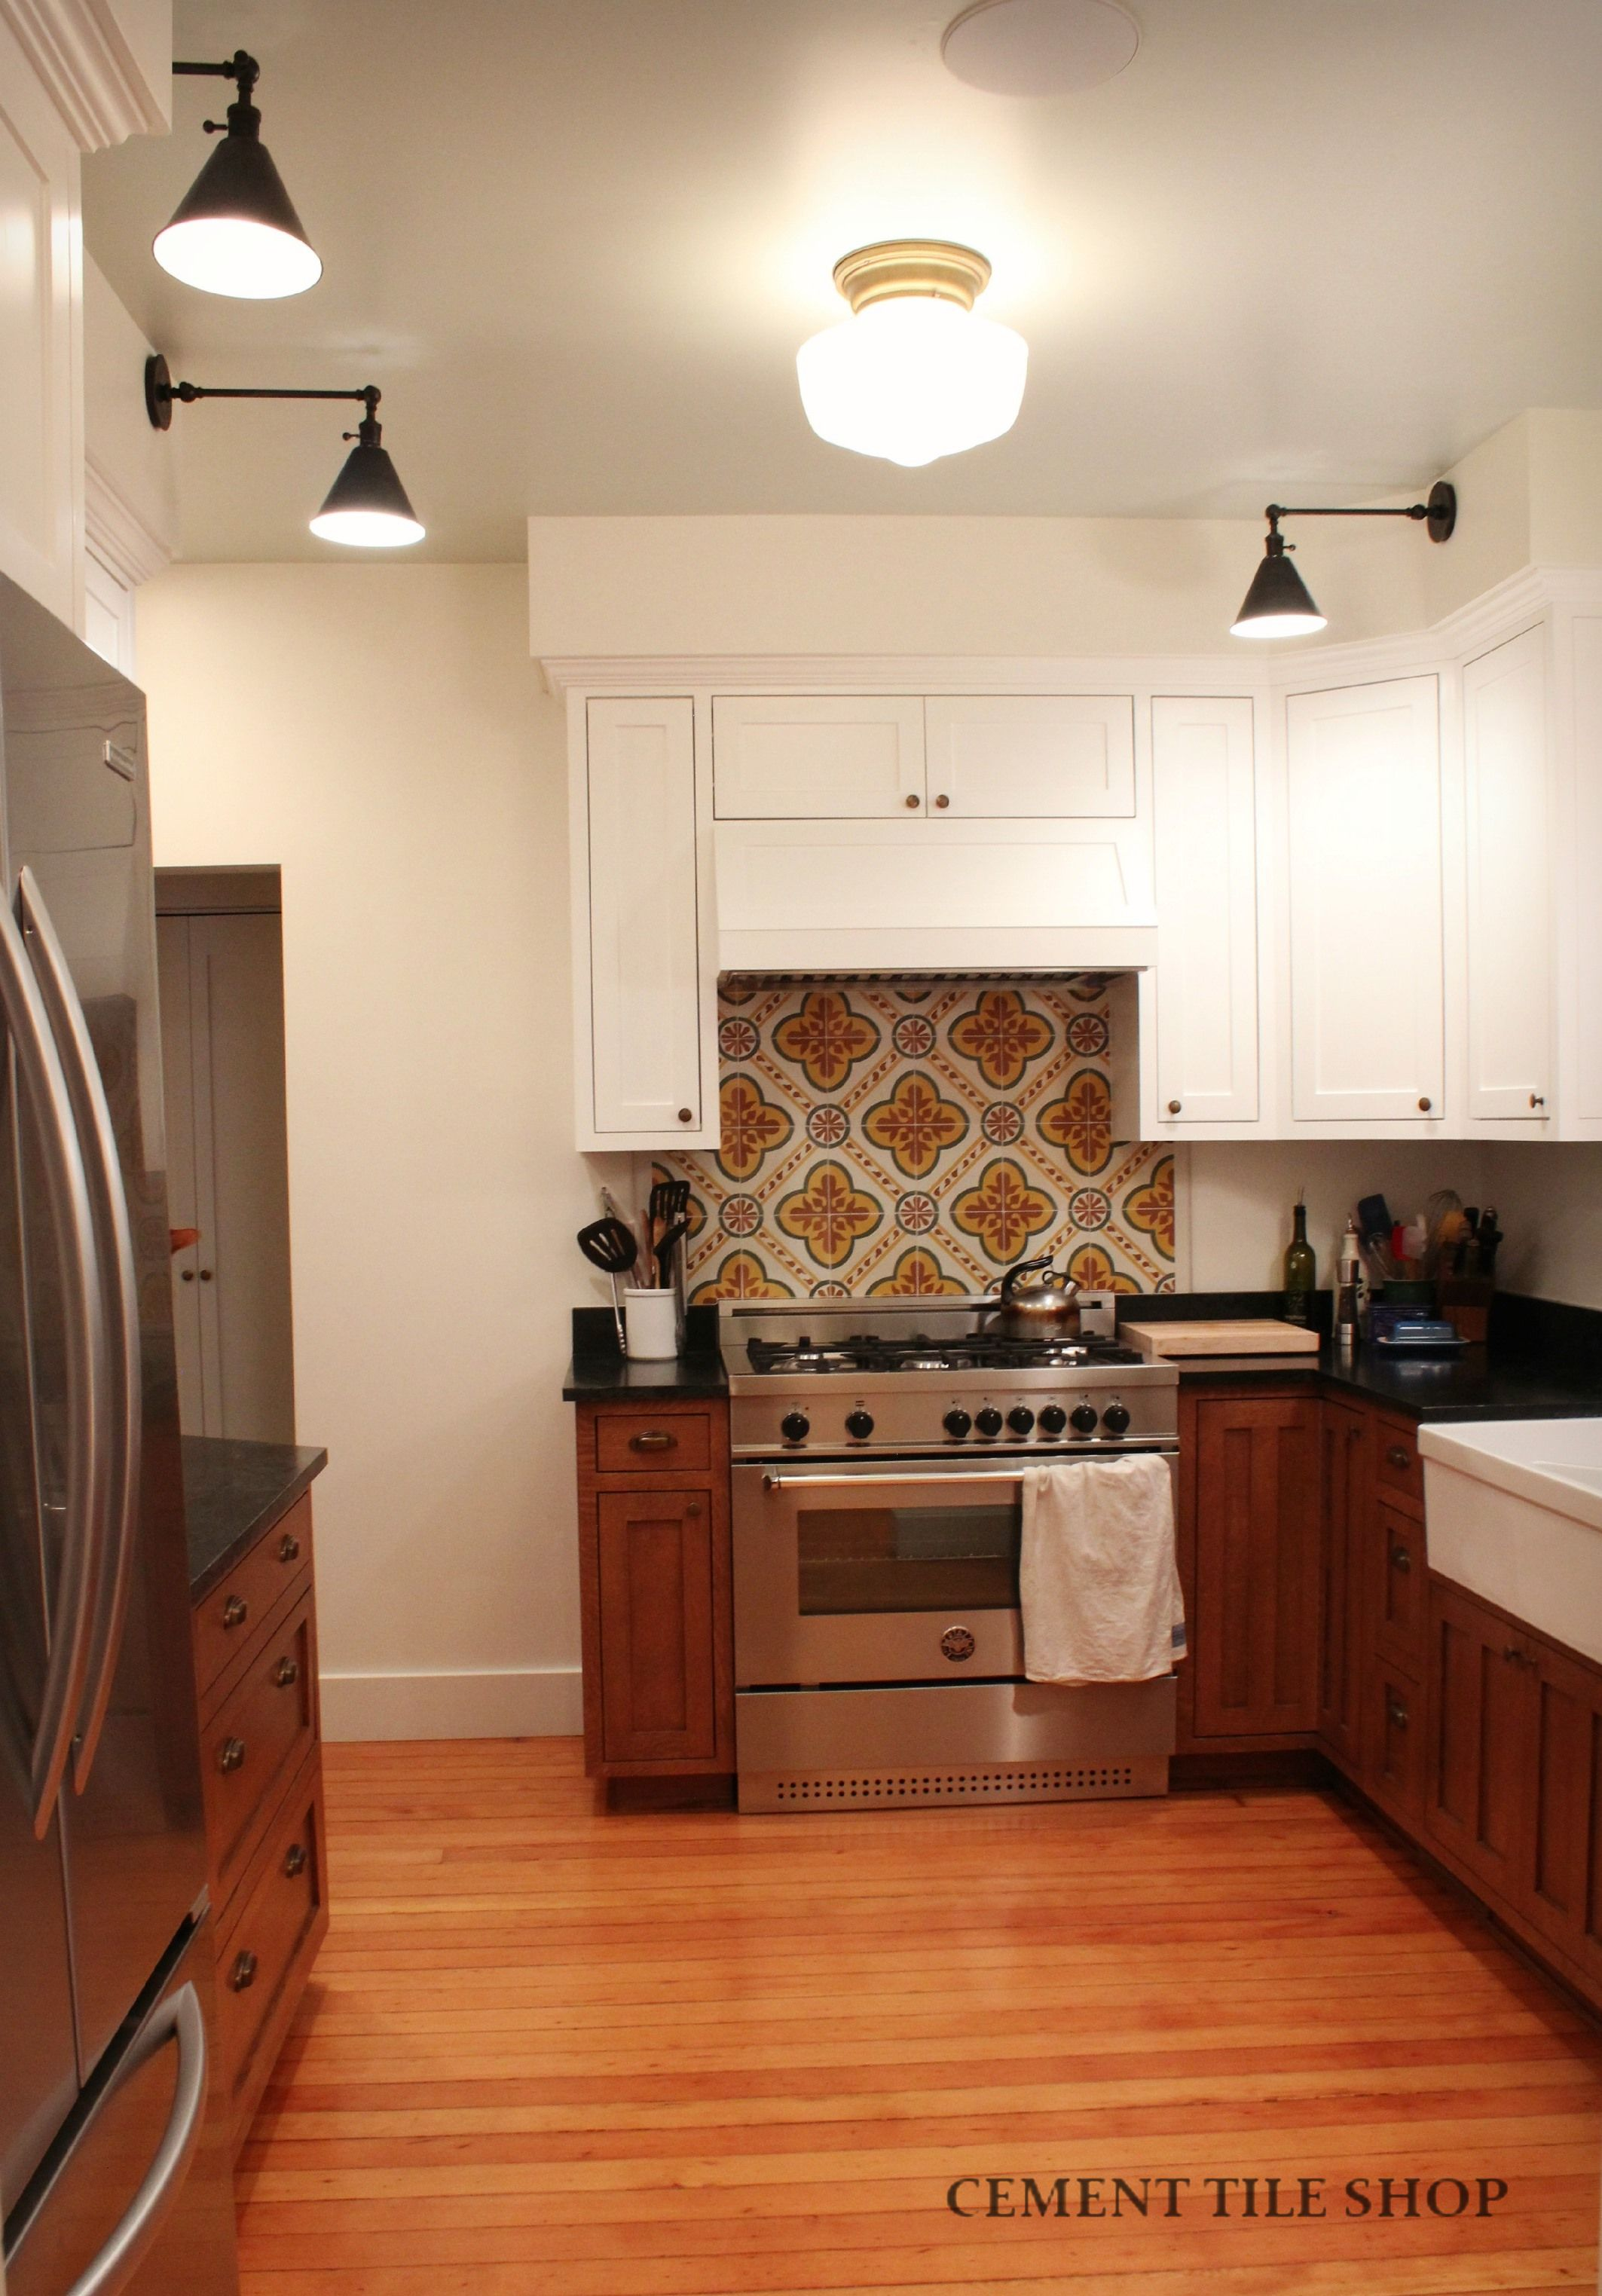 Urban Orchard Used Our Algeria Cement Tile